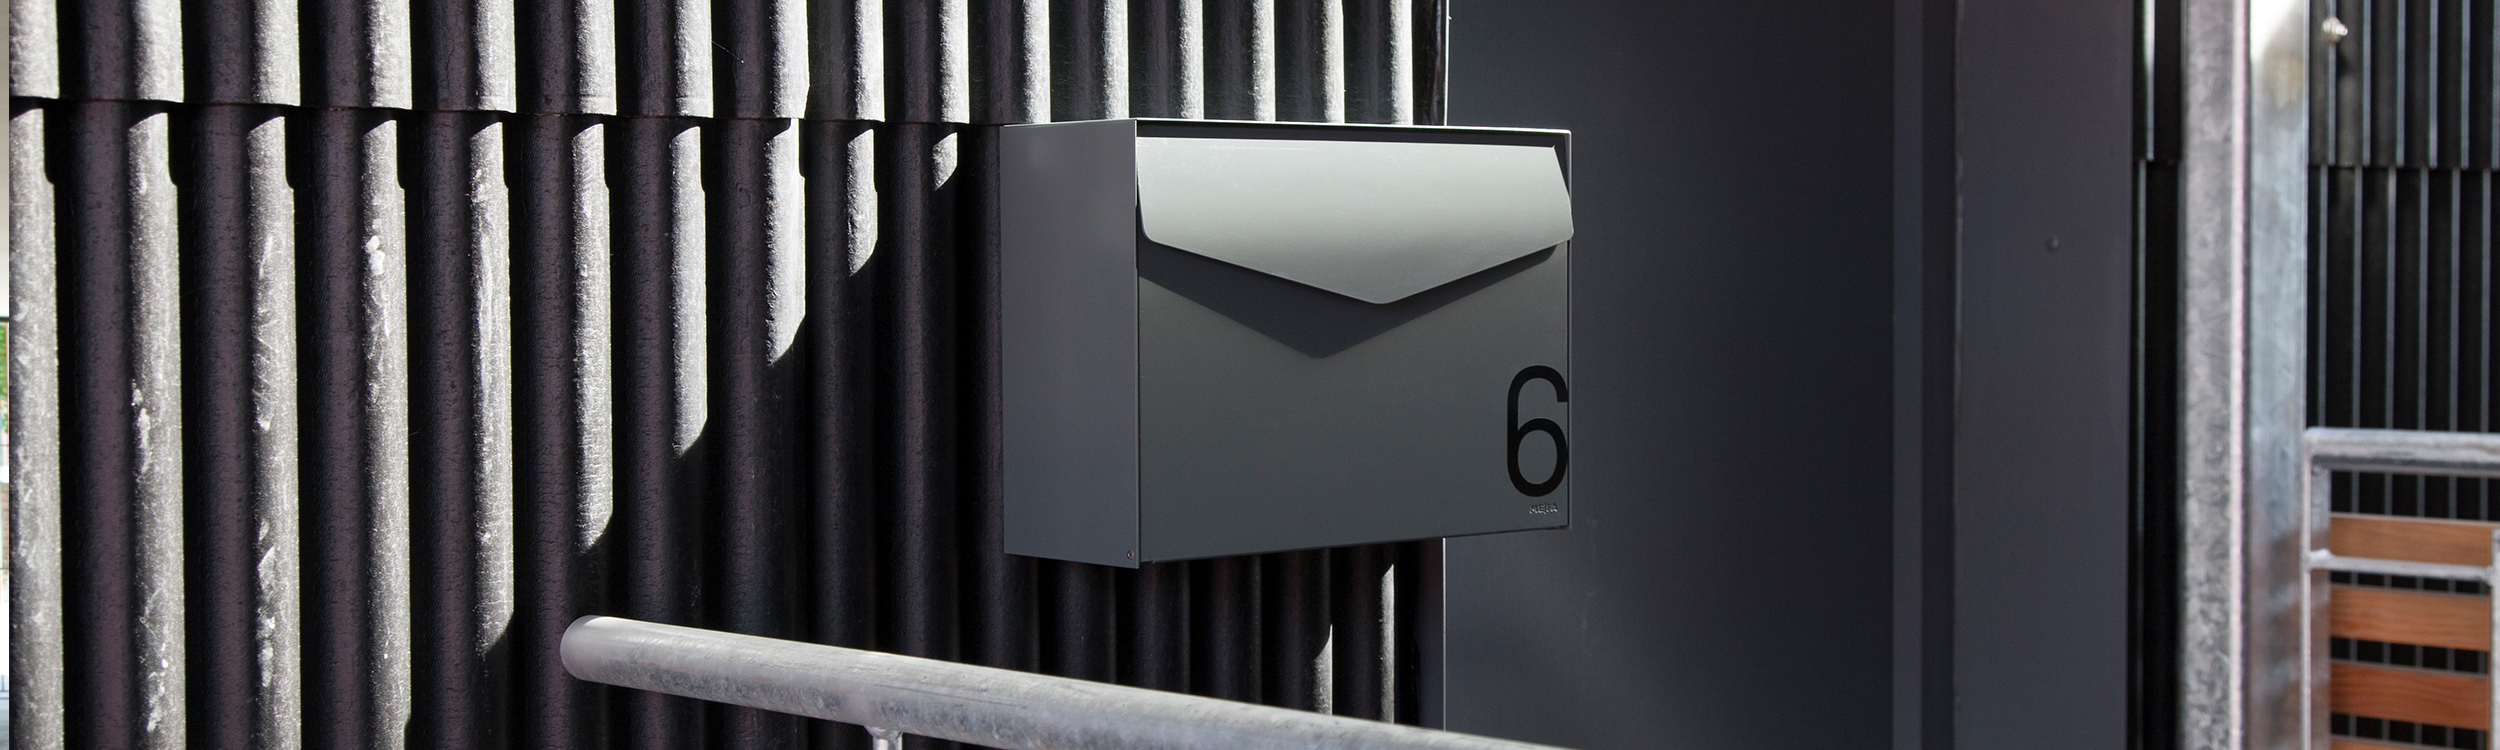 Secure Mailbox for the home from The Safety Letterbox Company